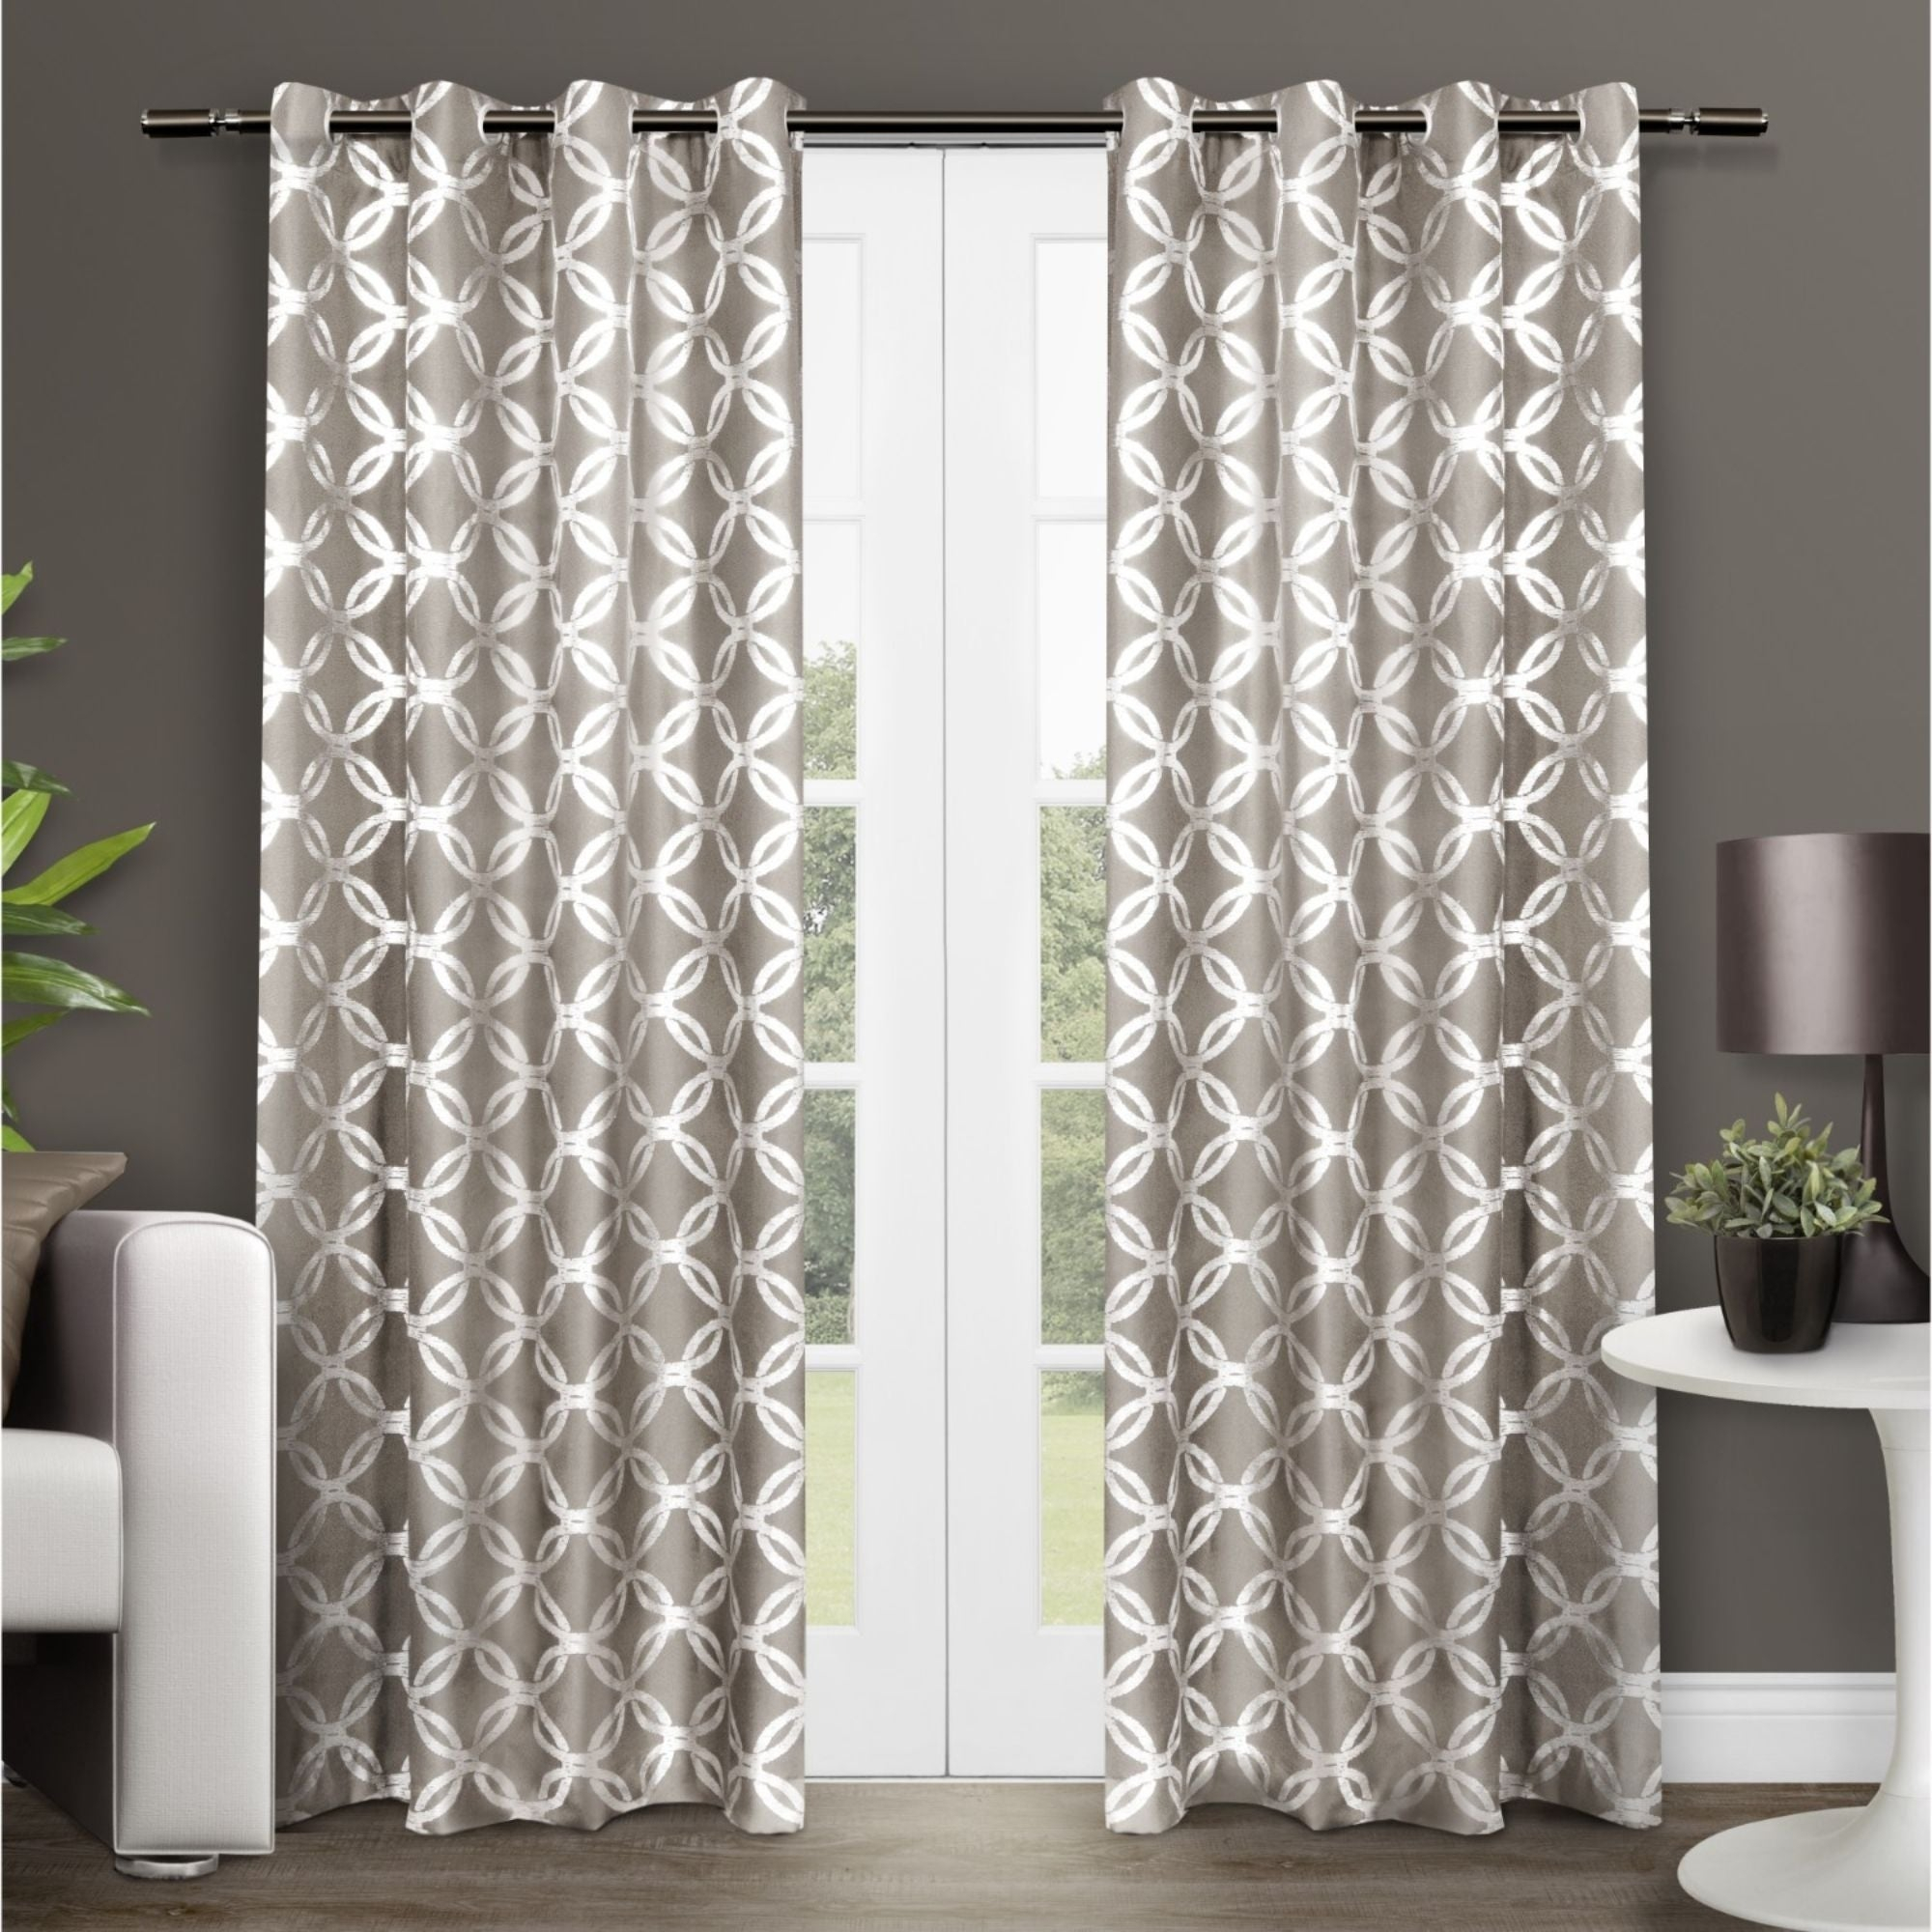 The Curated Nomad Sloat Metallic Geometric Grommet Top Curtain Panel Pair Intended For The Curated Nomad Duane Jacquard Grommet Top Curtain Panel Pairs (View 2 of 30)